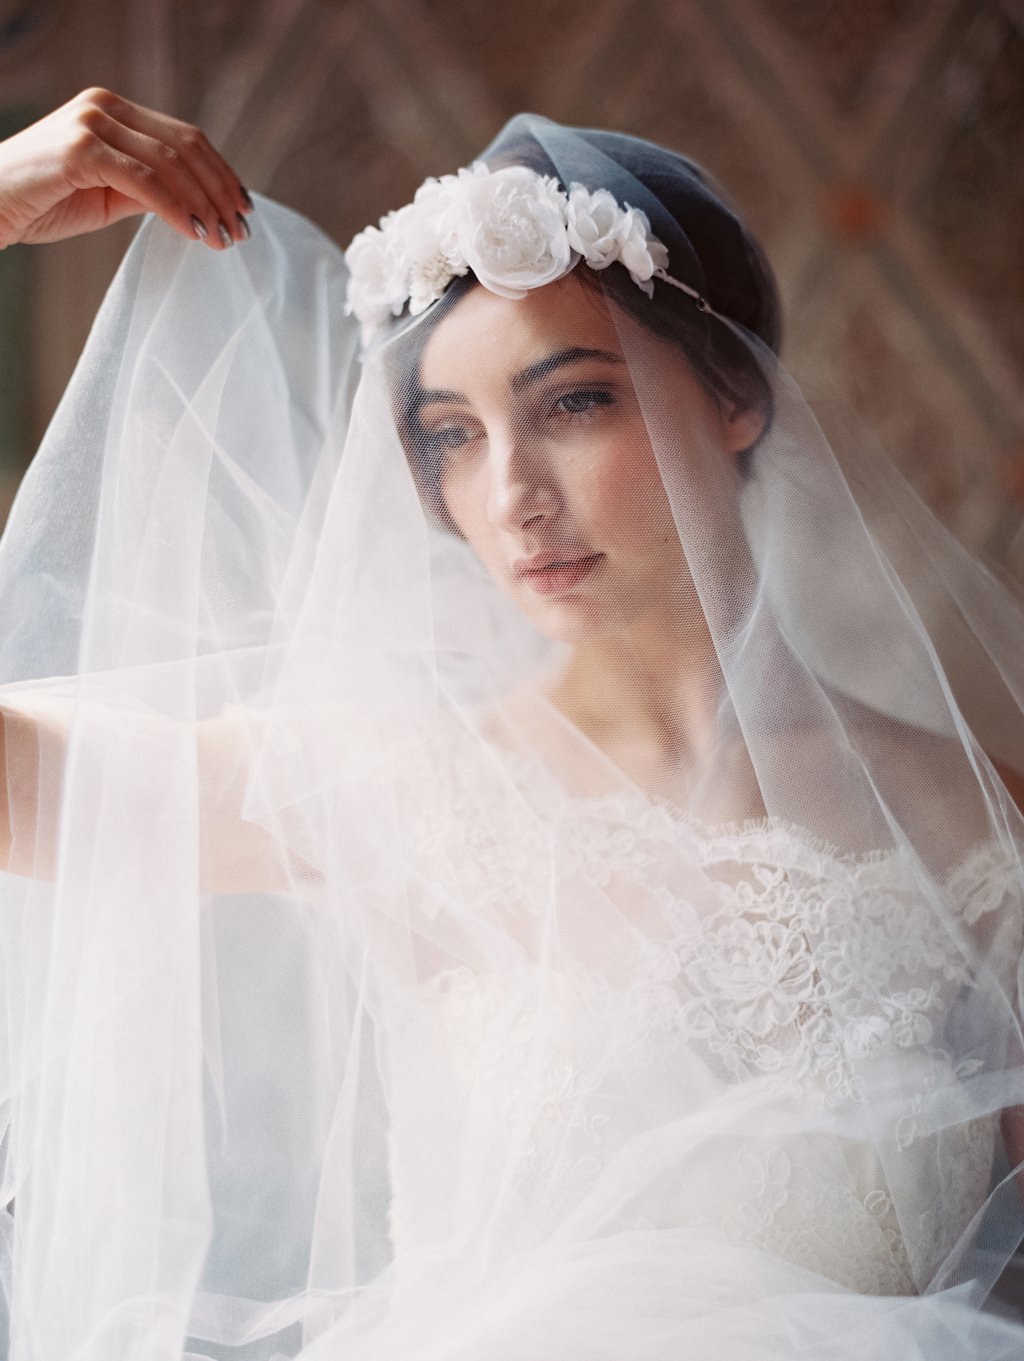 Atelier Wedding Veils and Hair Accessories - Veil with Floral Crown